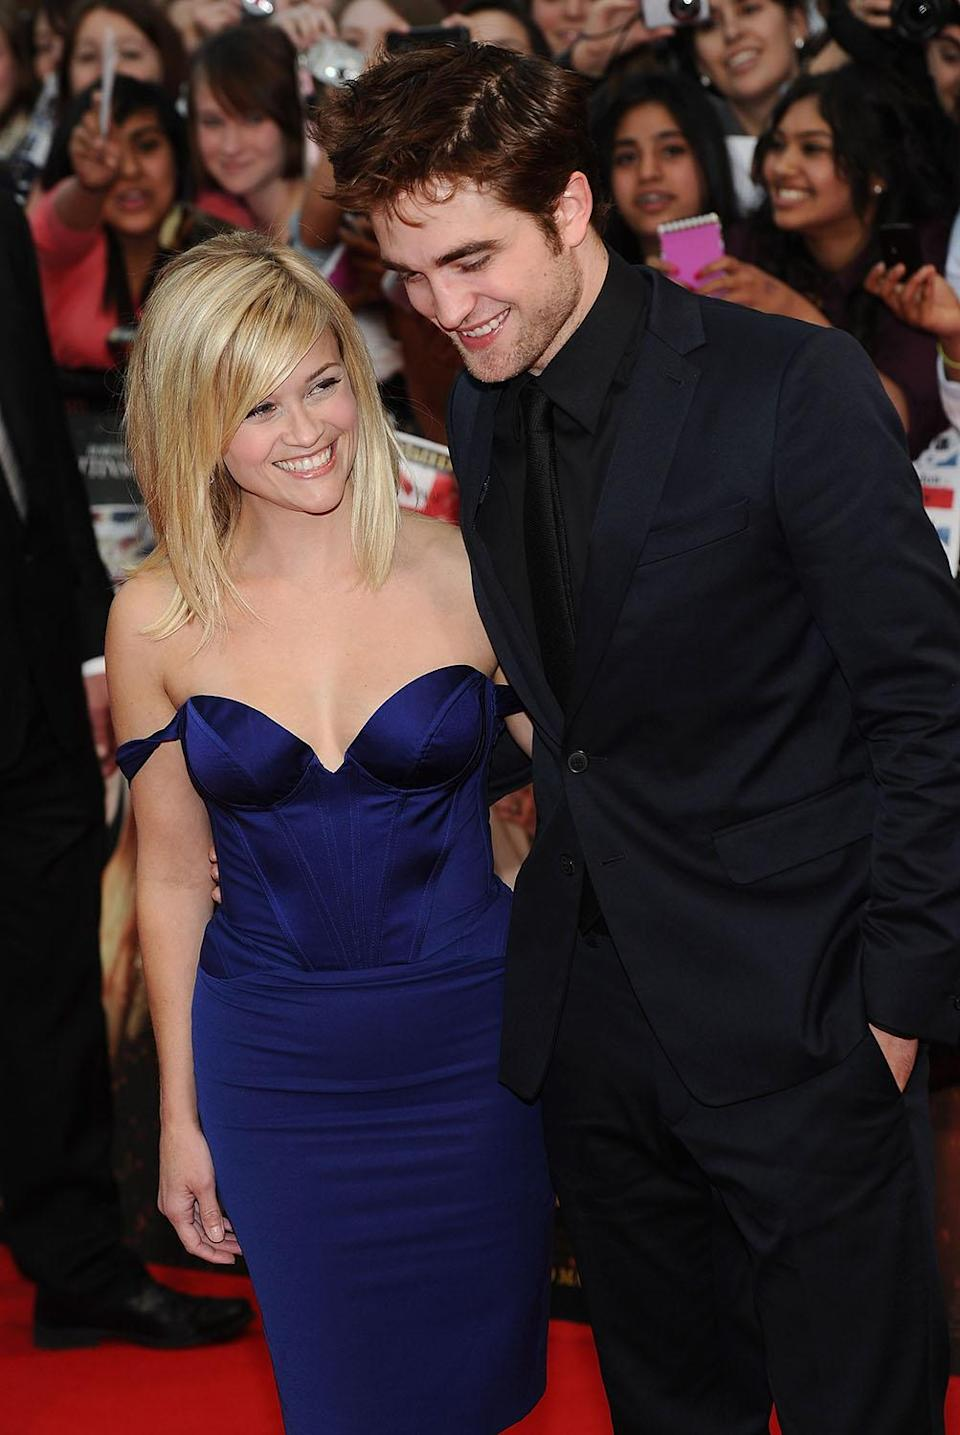 <p>Reunited with former <em>Vanity Fair</em> co-star and on-screen son, Reese shared a laugh with Robert Pattinson as they walked the red carpet at the London premiere of the film based on the 2006 novel. (Photo: Getty Images) </p>